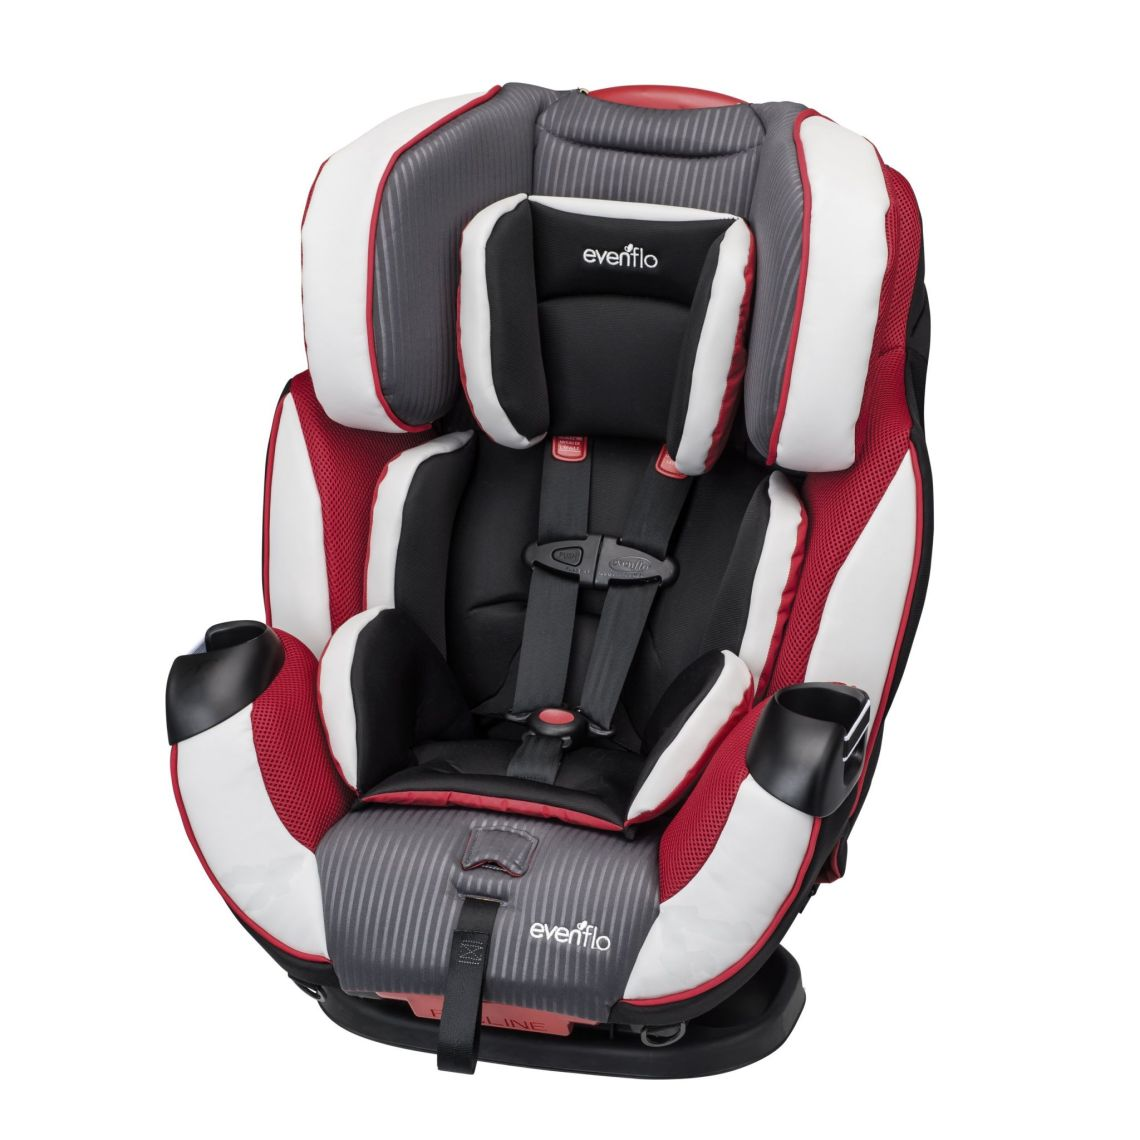 Amazon.com : Evenflo Symphony DLX All-In-One Convertible Car Seat, Modesto : Baby